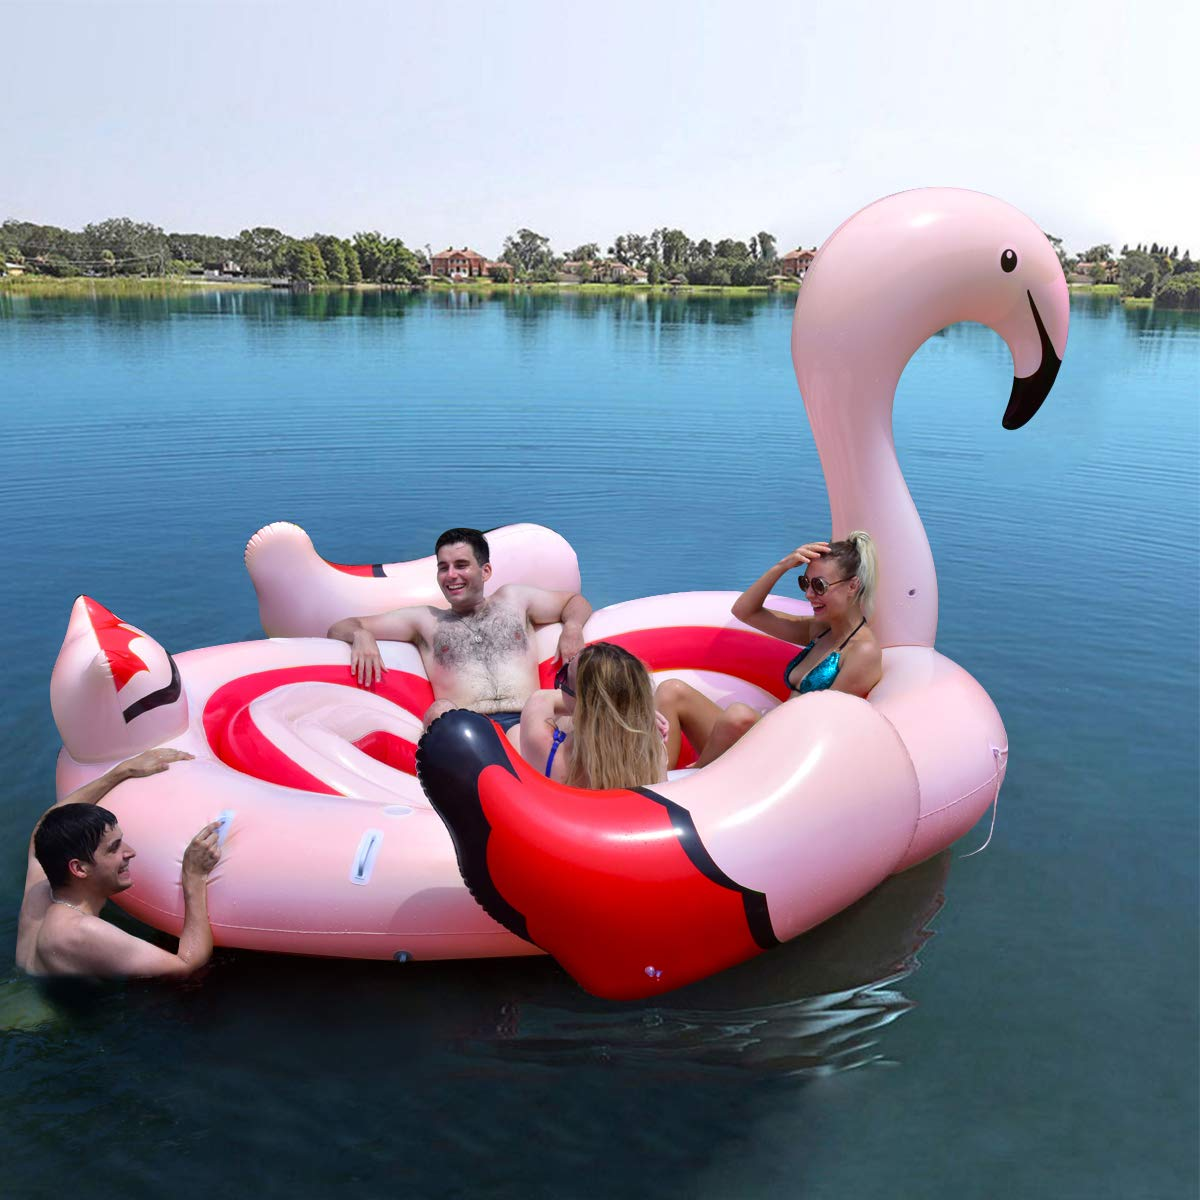 Goplus Island Giant Flamingo Float, Swimming Pool Raft Lounge for Adults & Kids, Inflatable Toy for Summer Pool Party, Beach Toys Large Pool Floats for up to 6 People (Flamingo) by Goplus